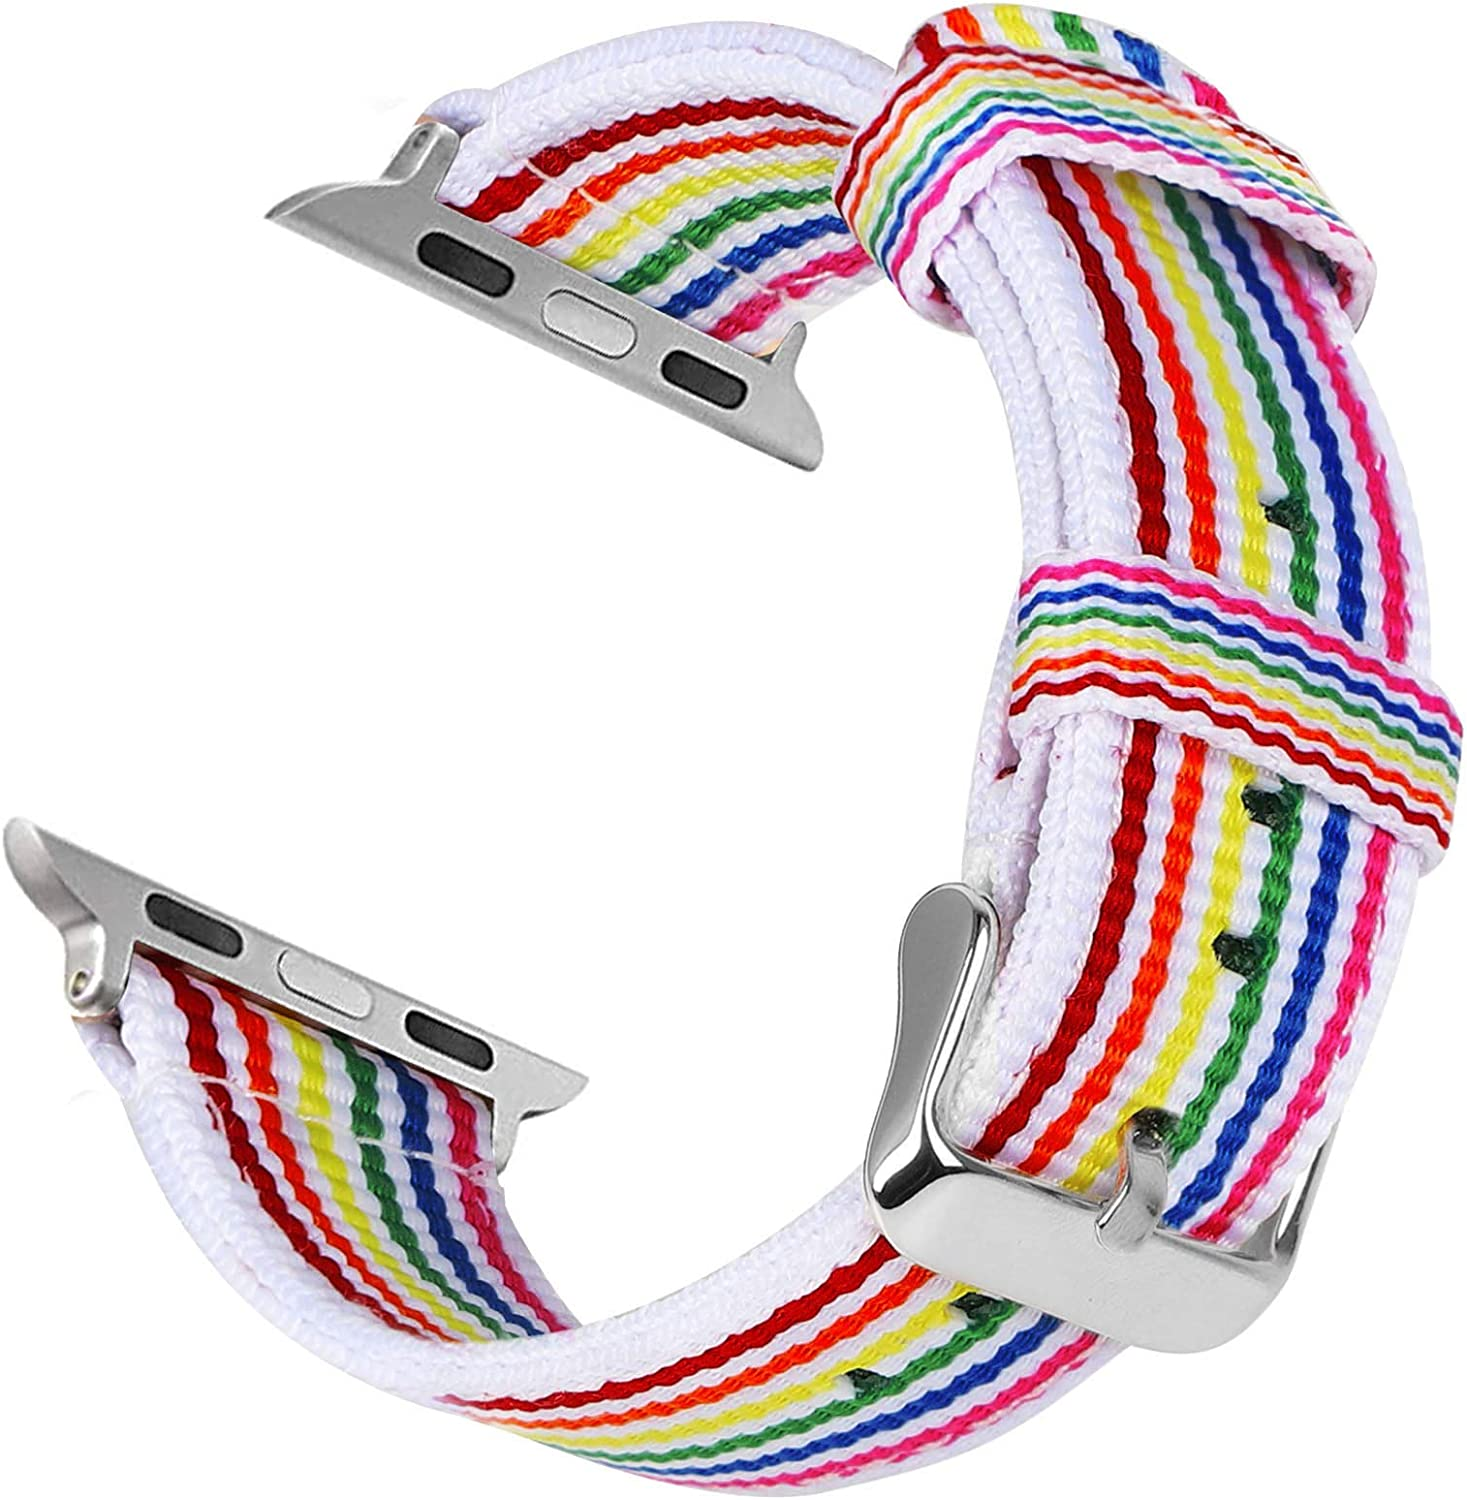 KAYSEUN Rainbow Watch Bands Compatible with Apple Watch SE 44mm 40mm Series 6/5/4,Sturdy Colorful Canvas Apple Watch Band 42mm 38mm for Mens/Womens